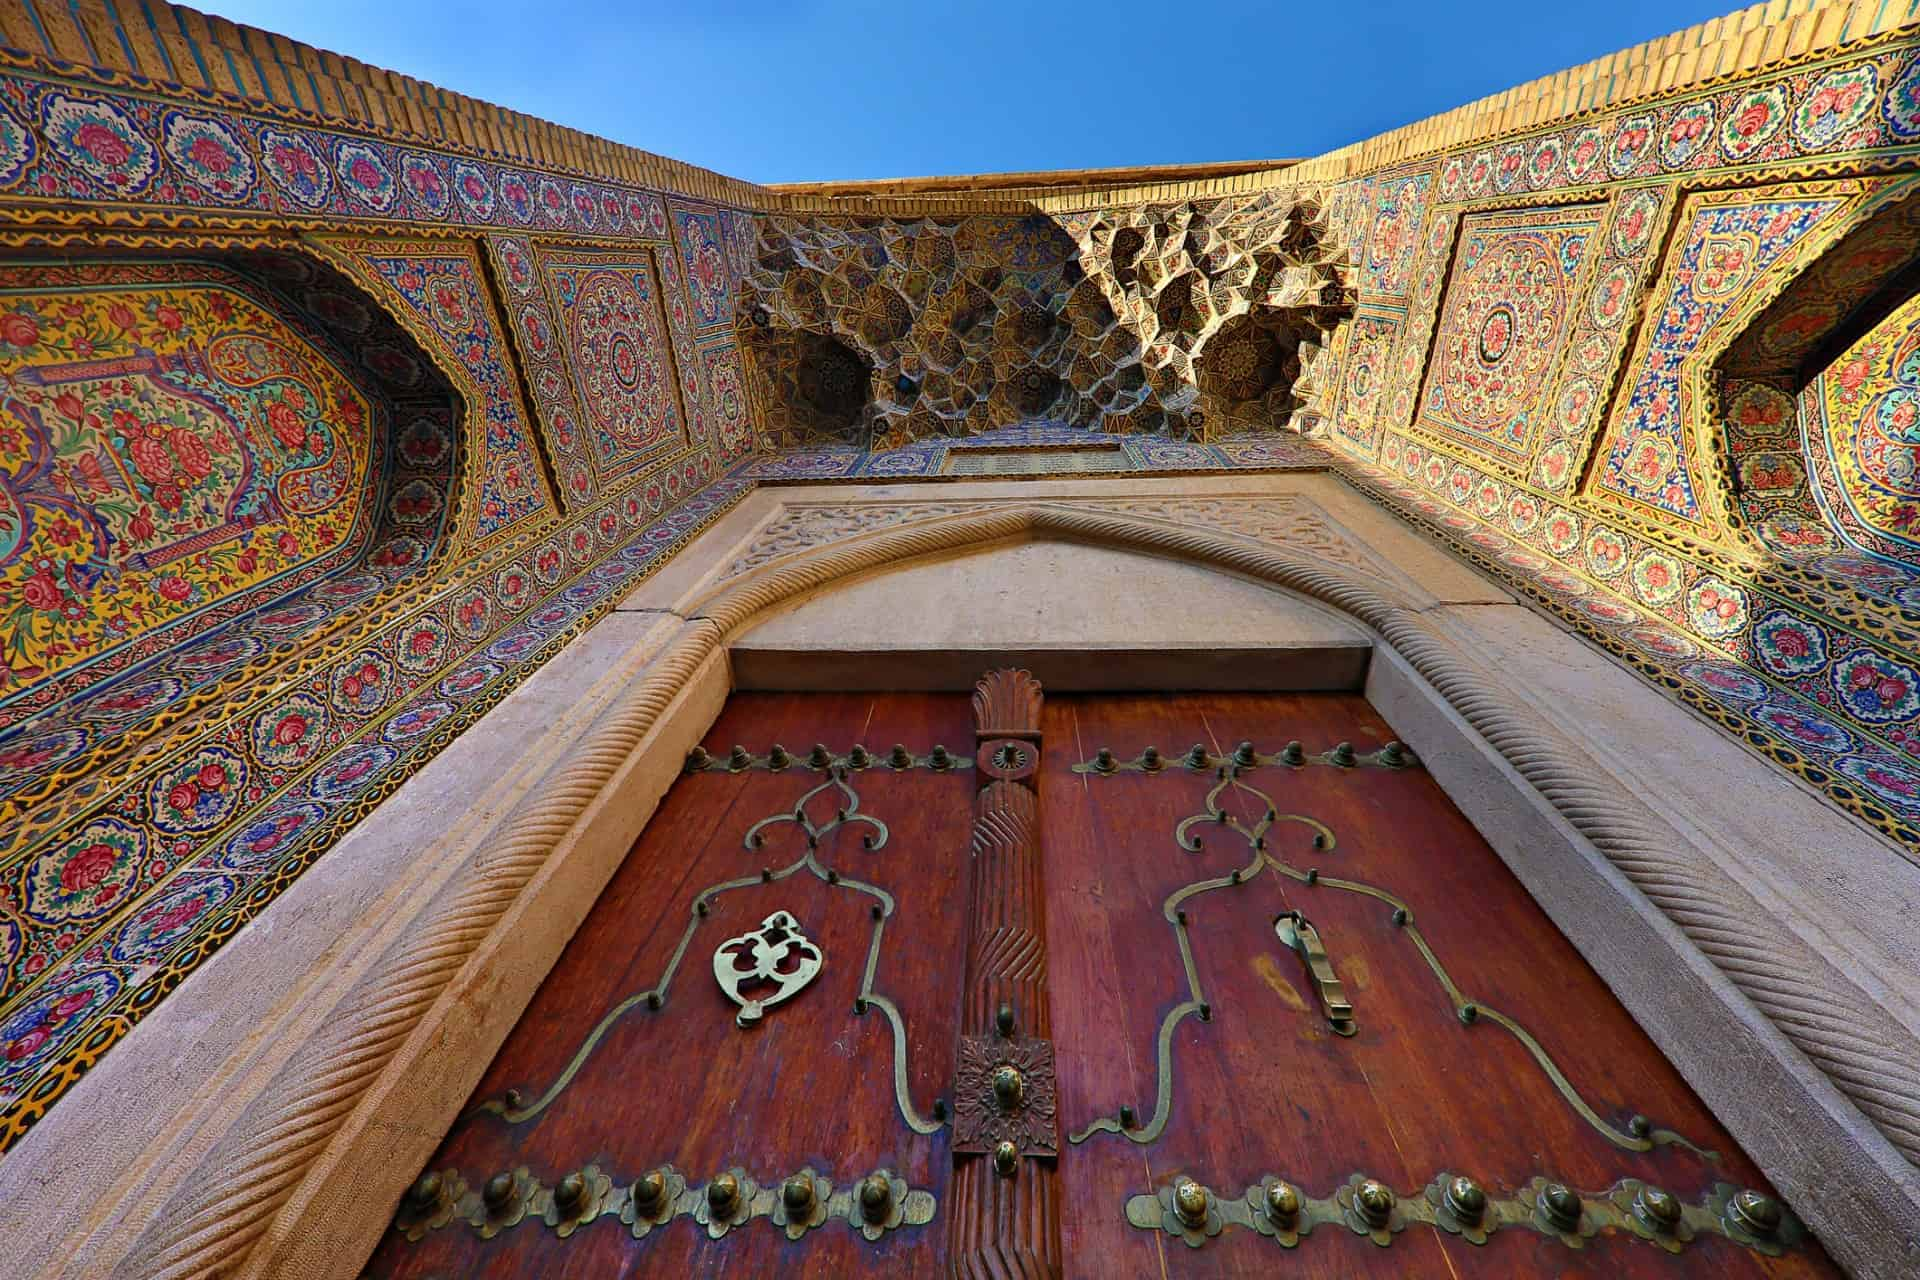 Door and gate of the Pink Mosque in Shiraz, Iran, known also as Nasiralmulk Mosque.